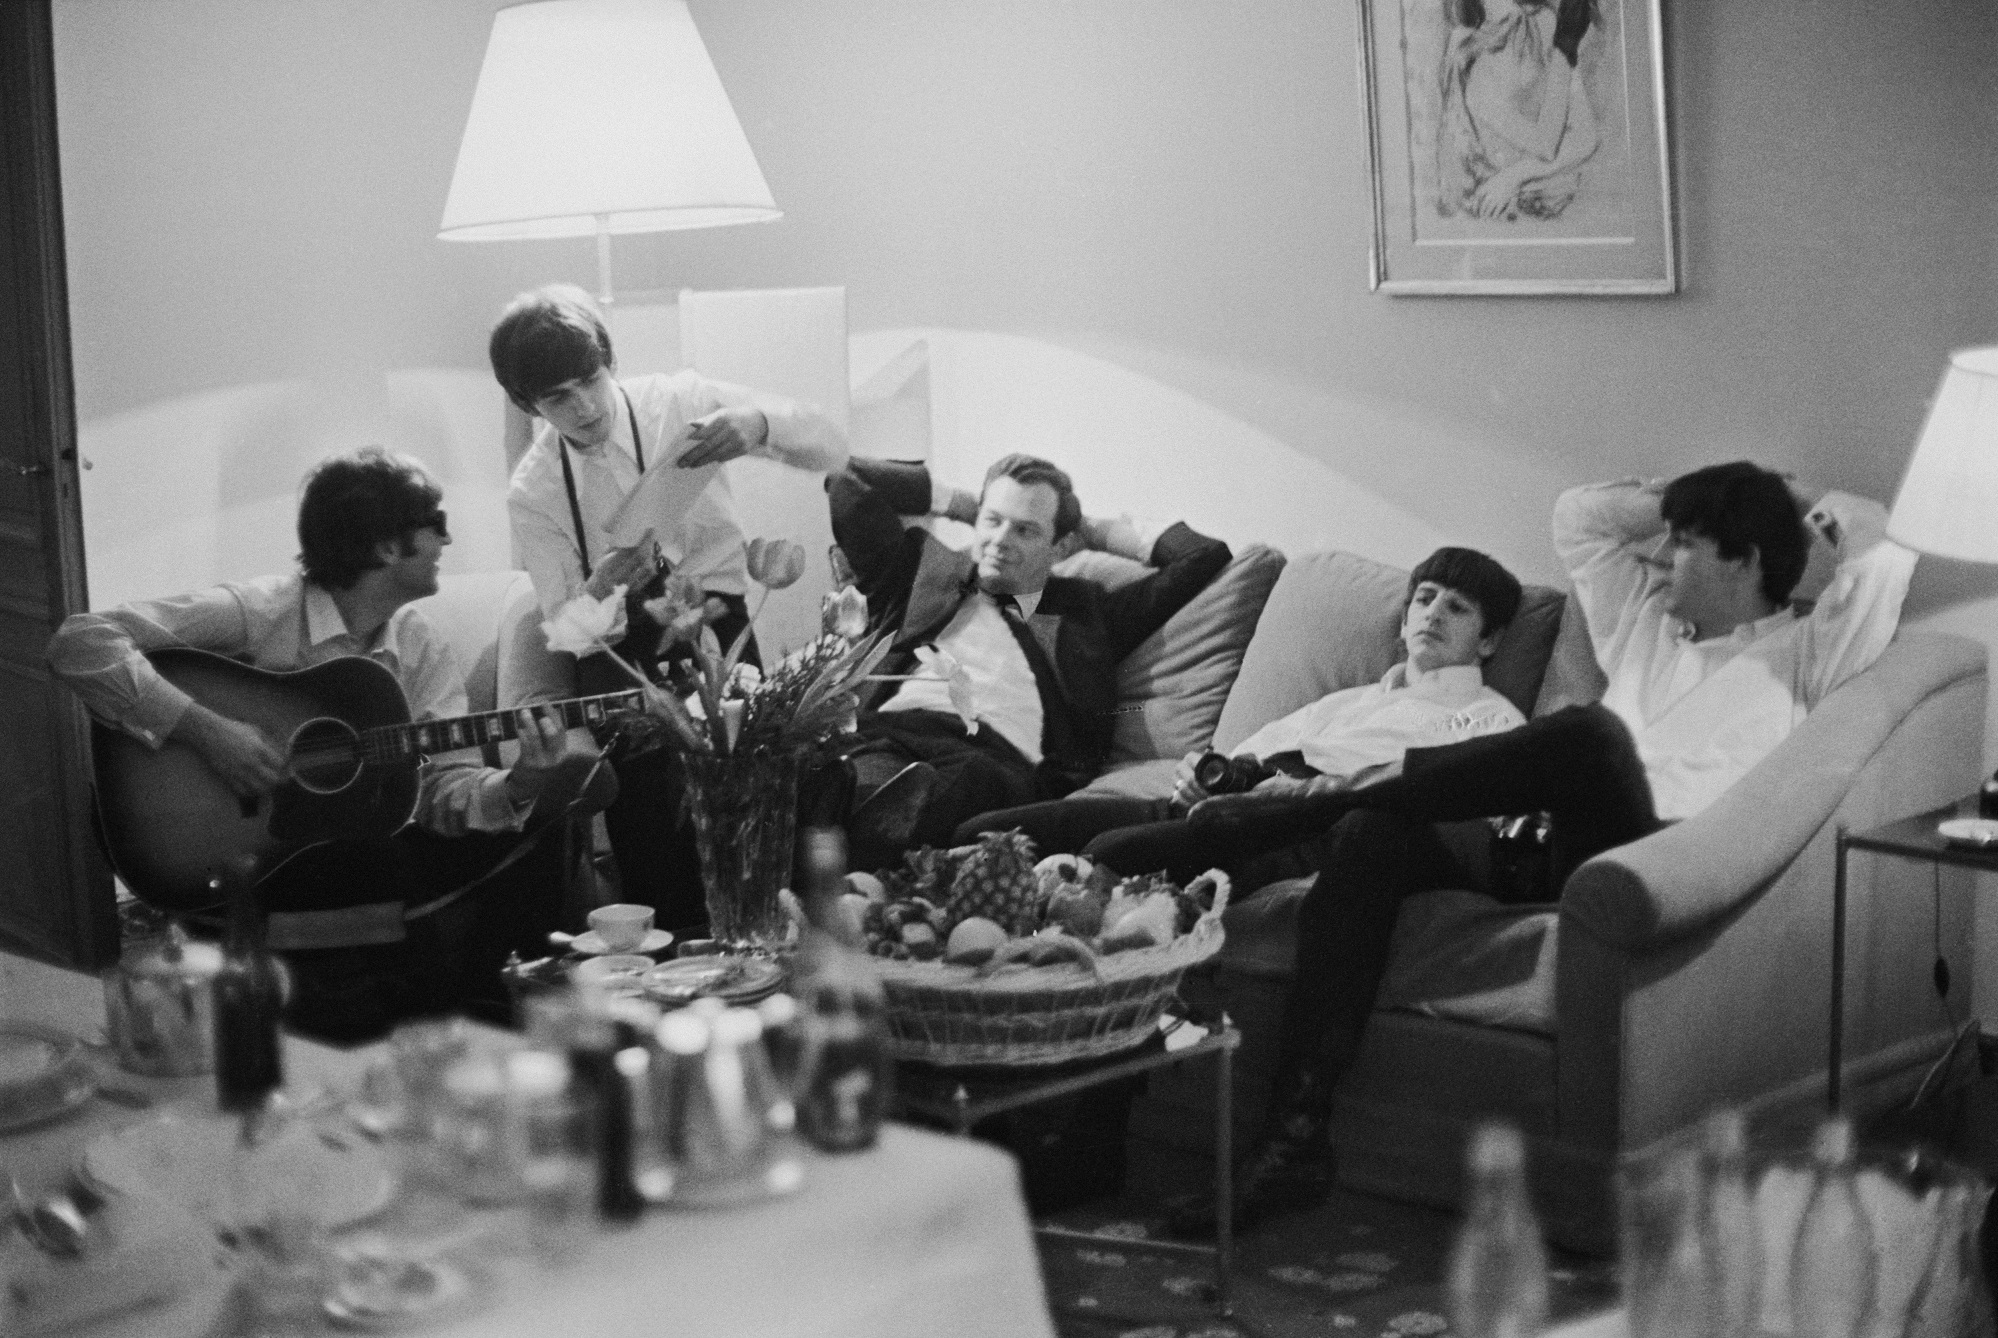 The Beatles relax in a hotel room in Paris, 16th January 1964.